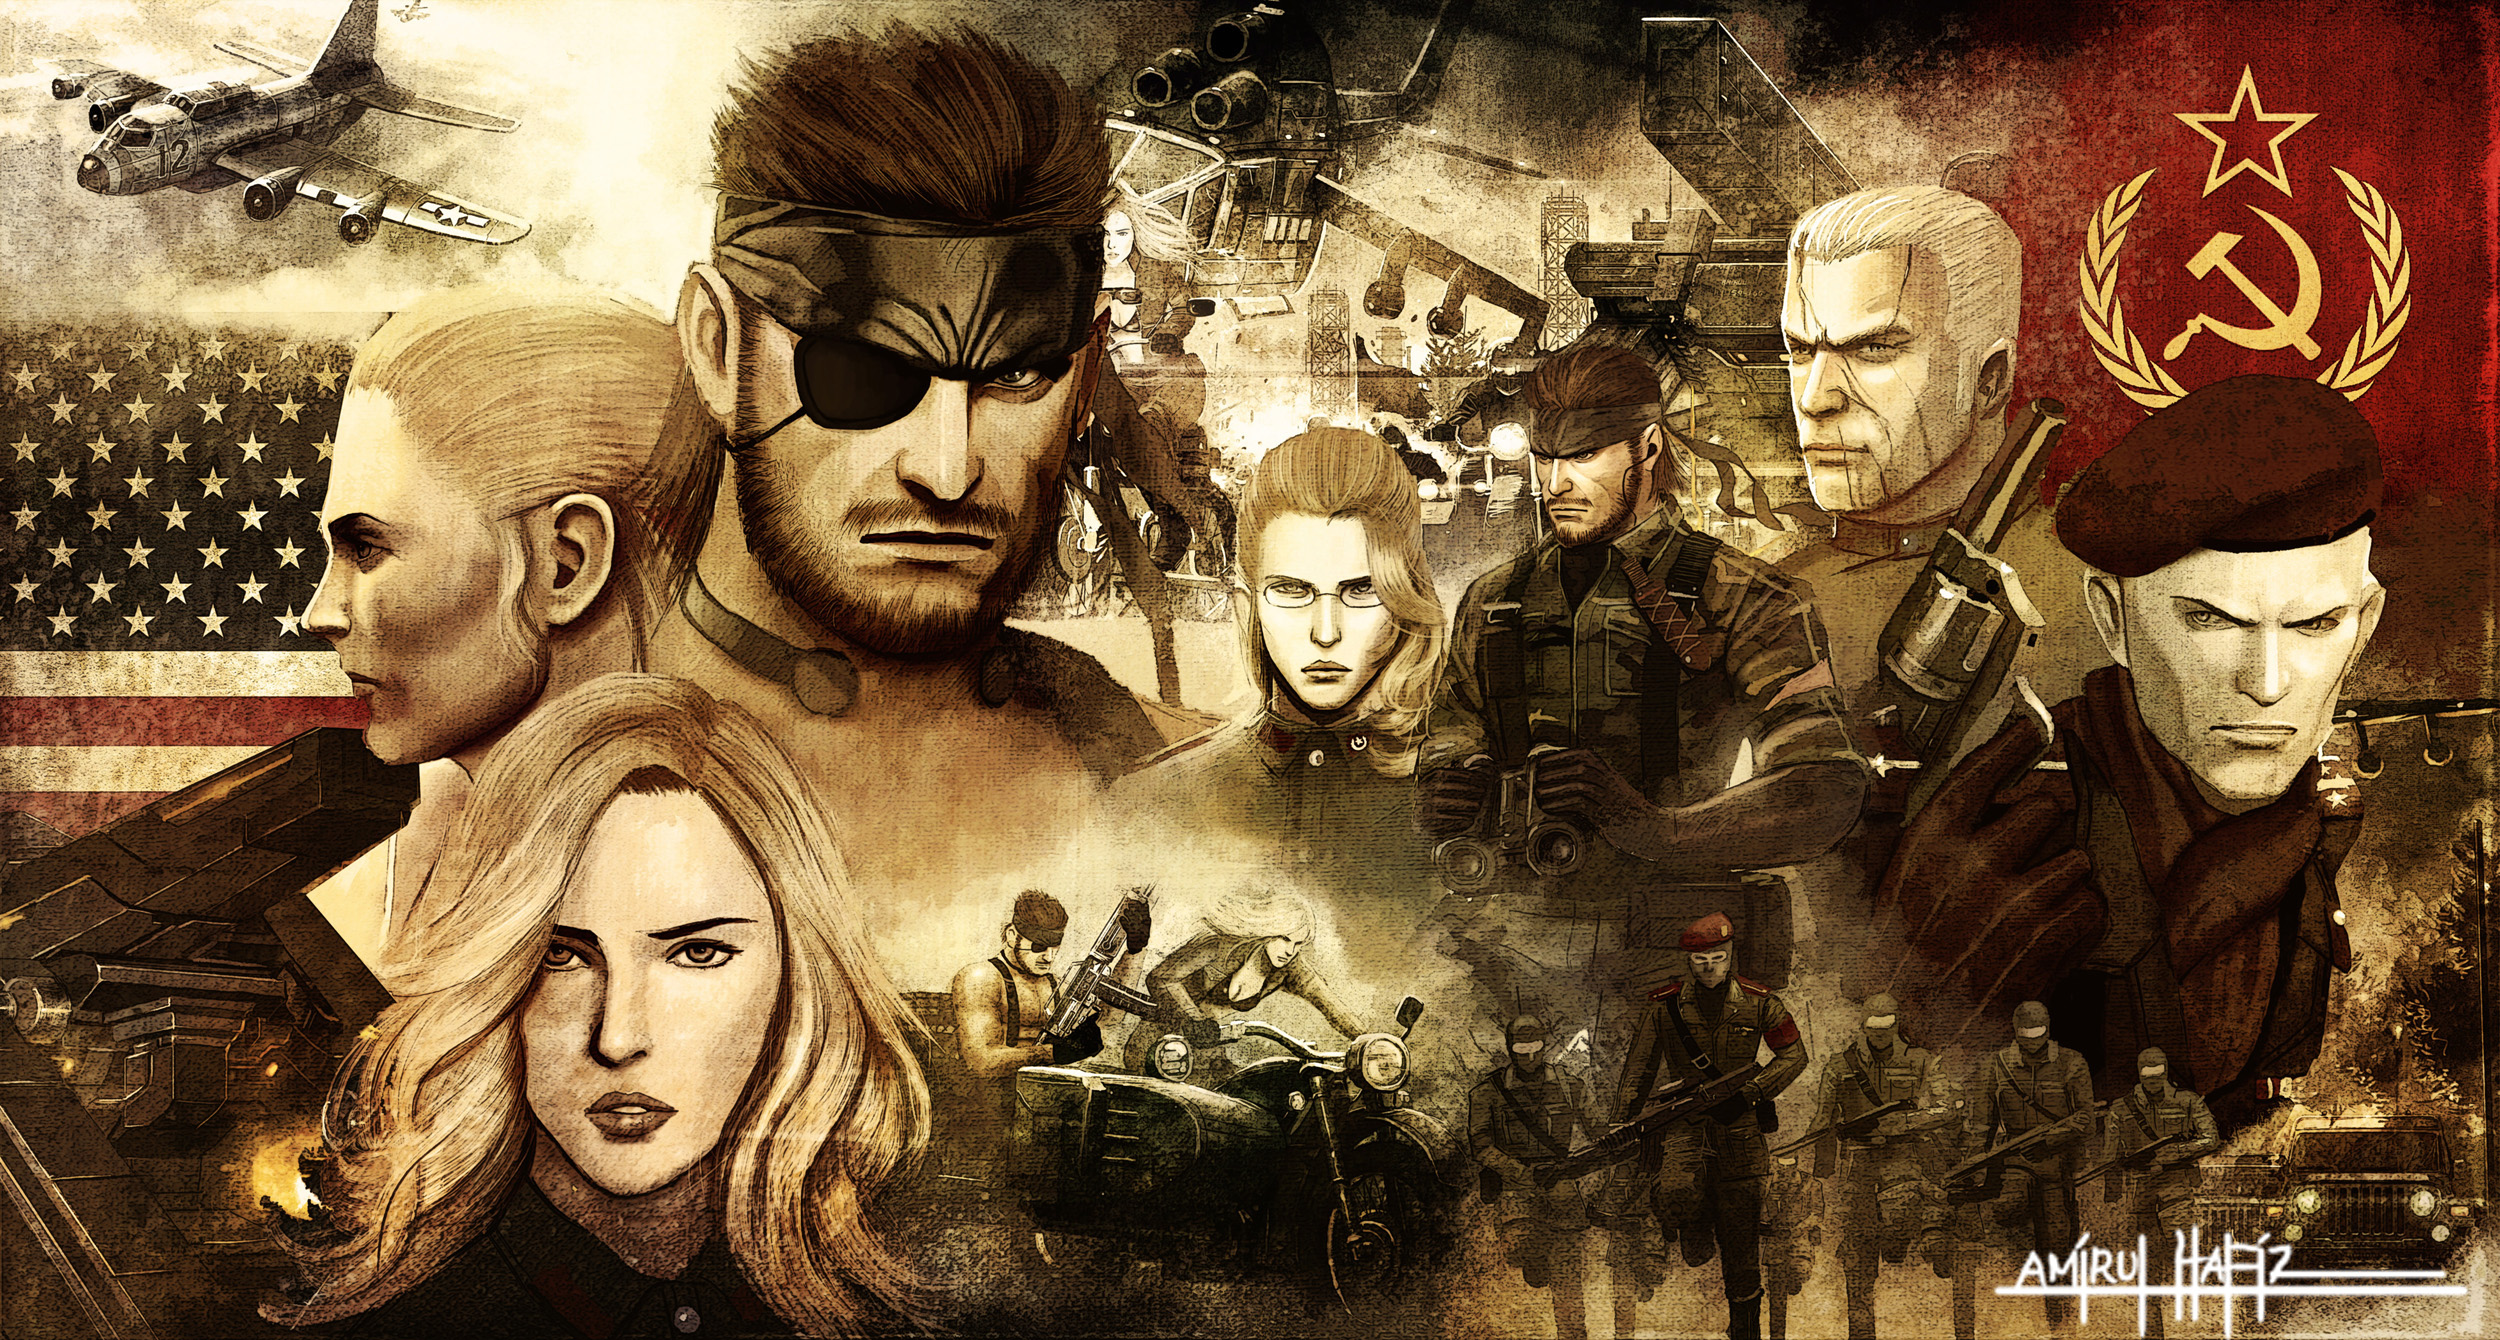 metal_gear_solid_3_snake_eater_poster_by